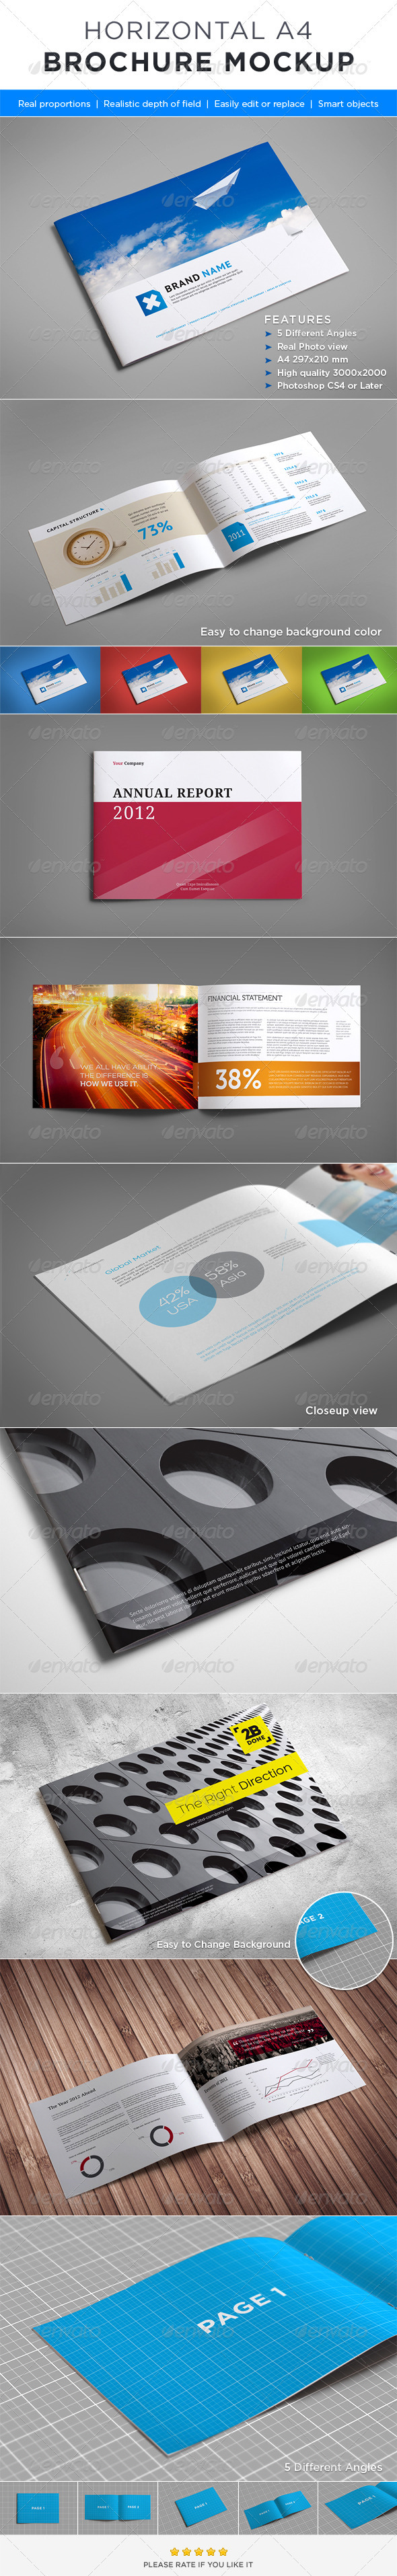 Horizontal Brochure Mock-up - Brochures Print